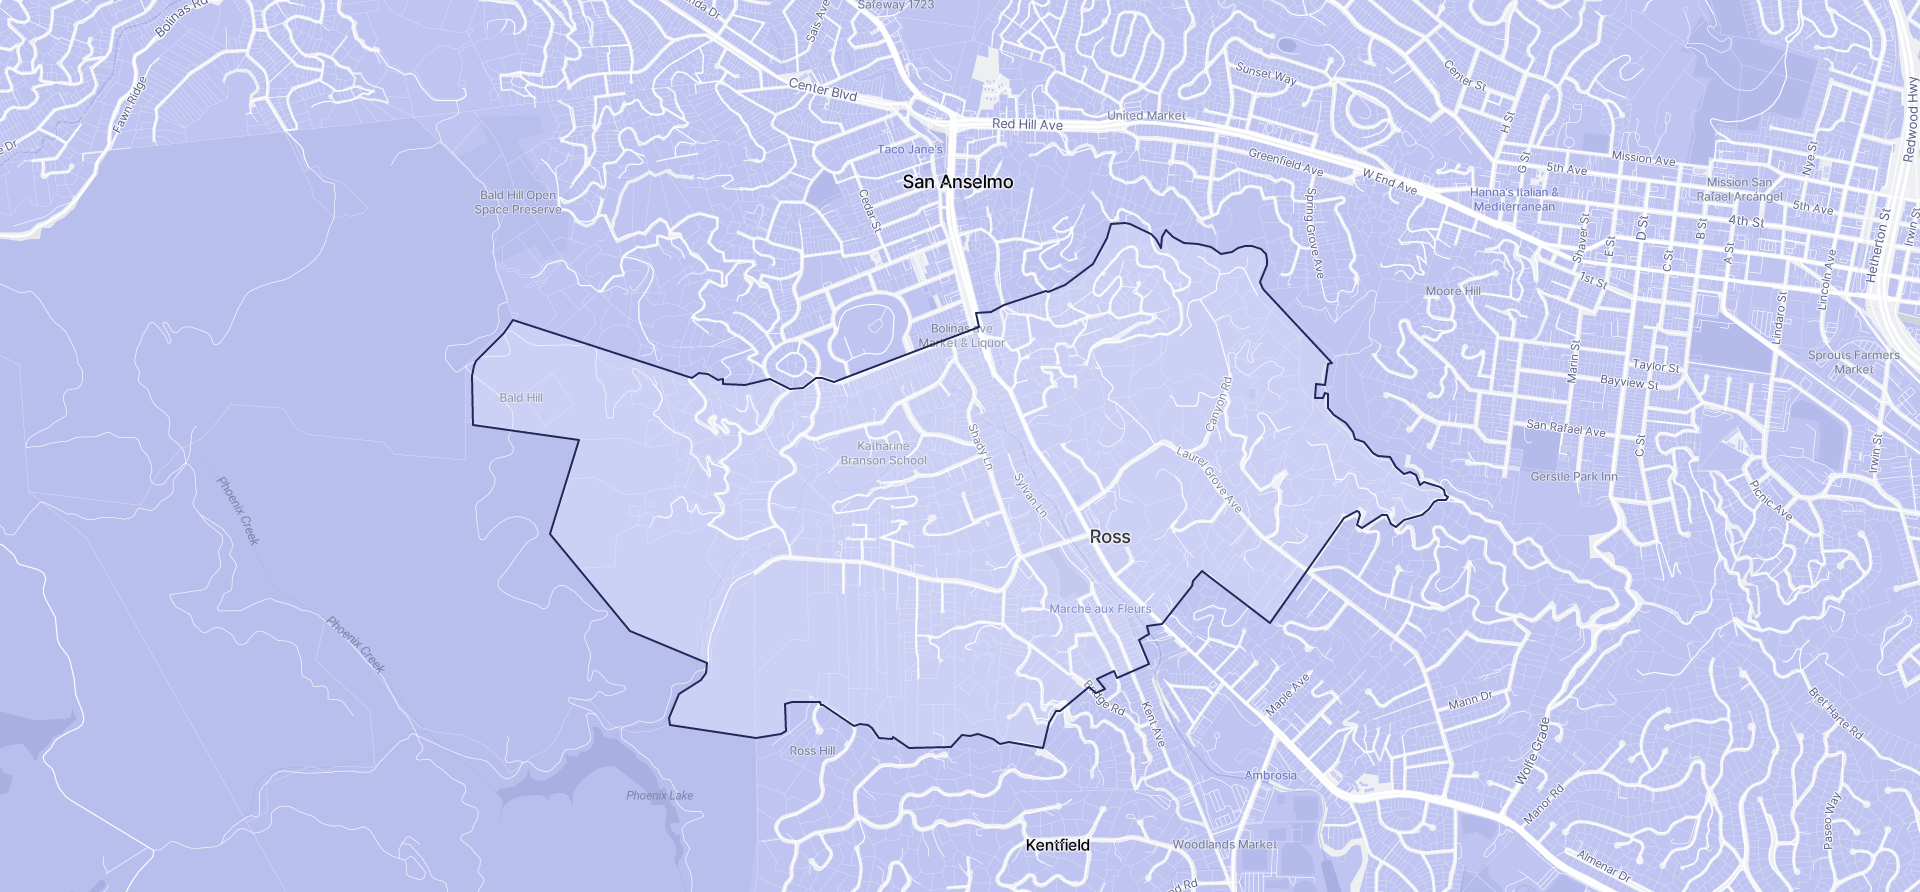 Image of Ross boundaries on a map.